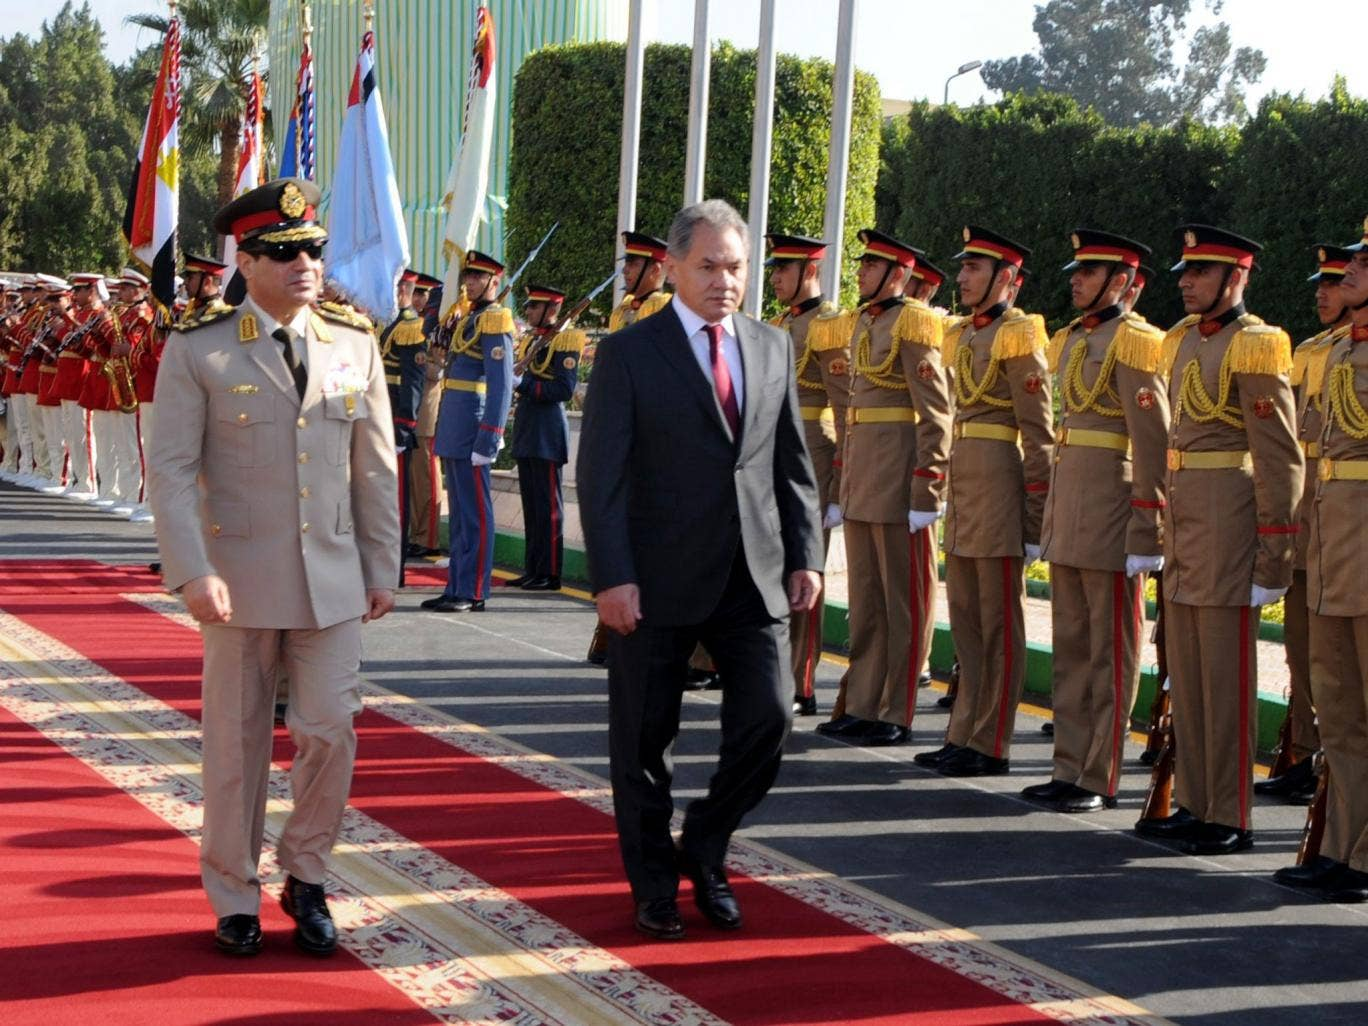 Egypt's Defence Minister Abdel Fattah el-Sisi (left) and his Russian counterpart Sergei Shoigu review guards before their meeting in Cairo